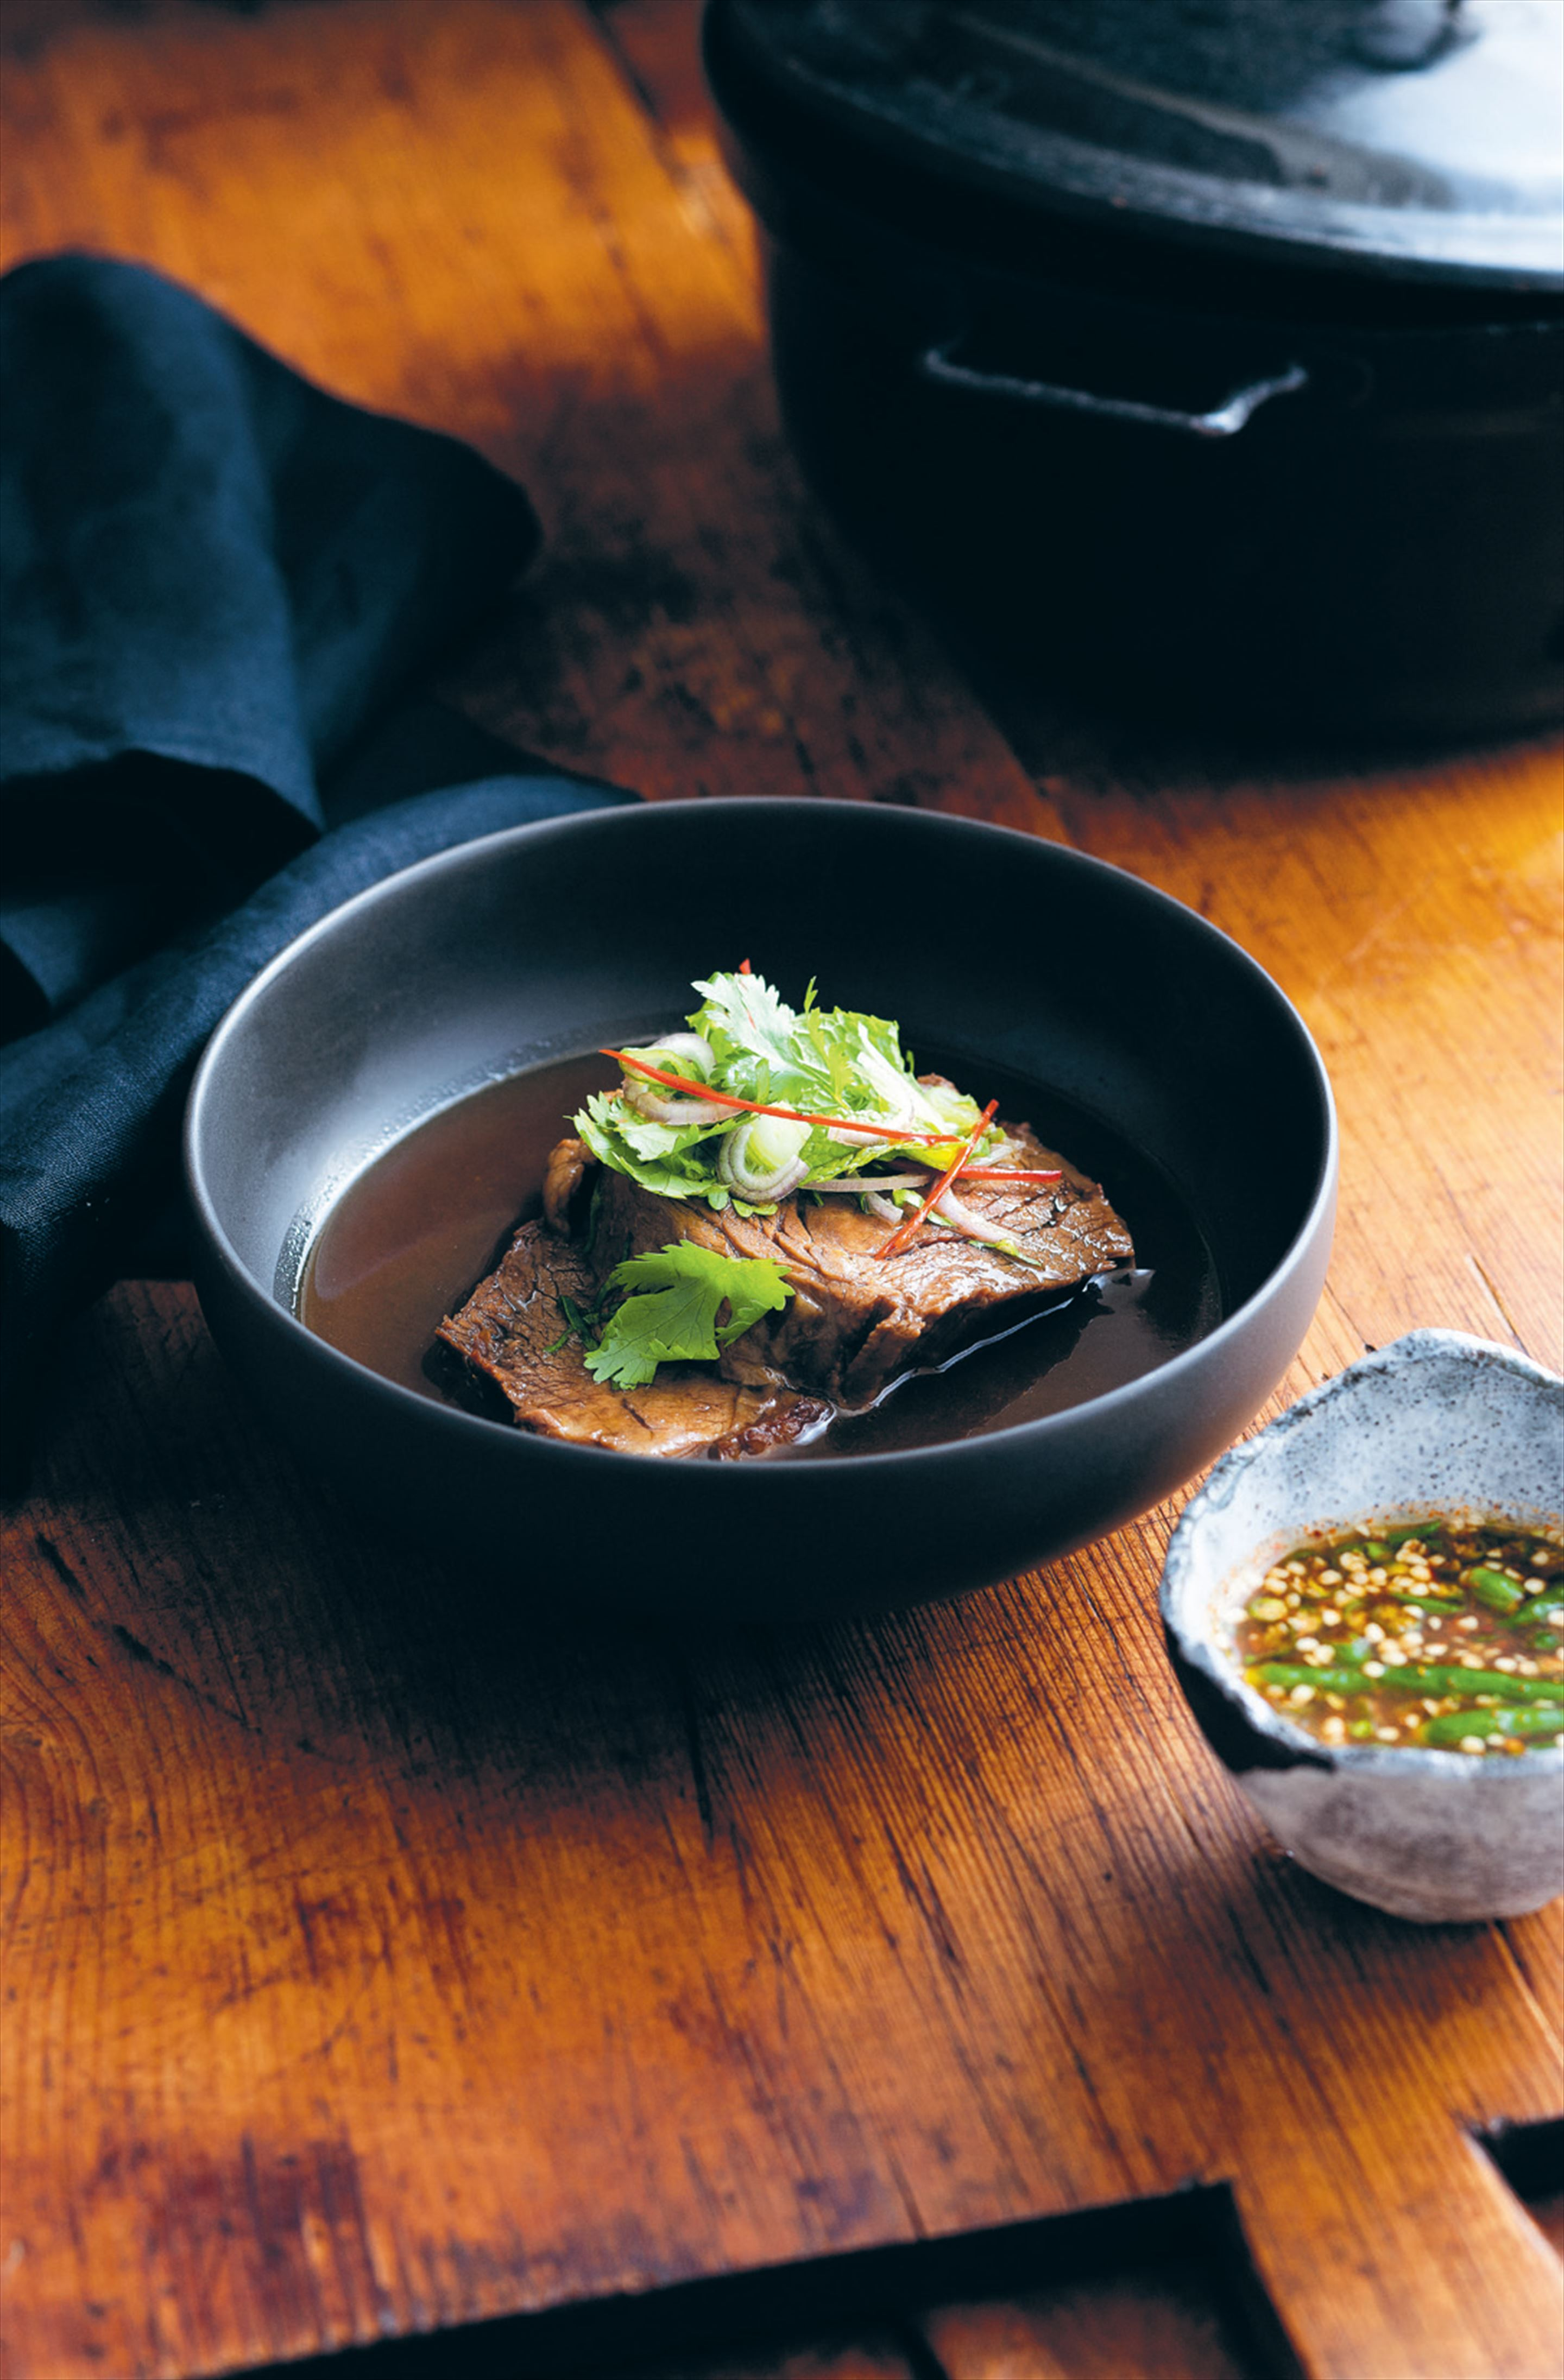 Braised beef shin with a hot and sour salad